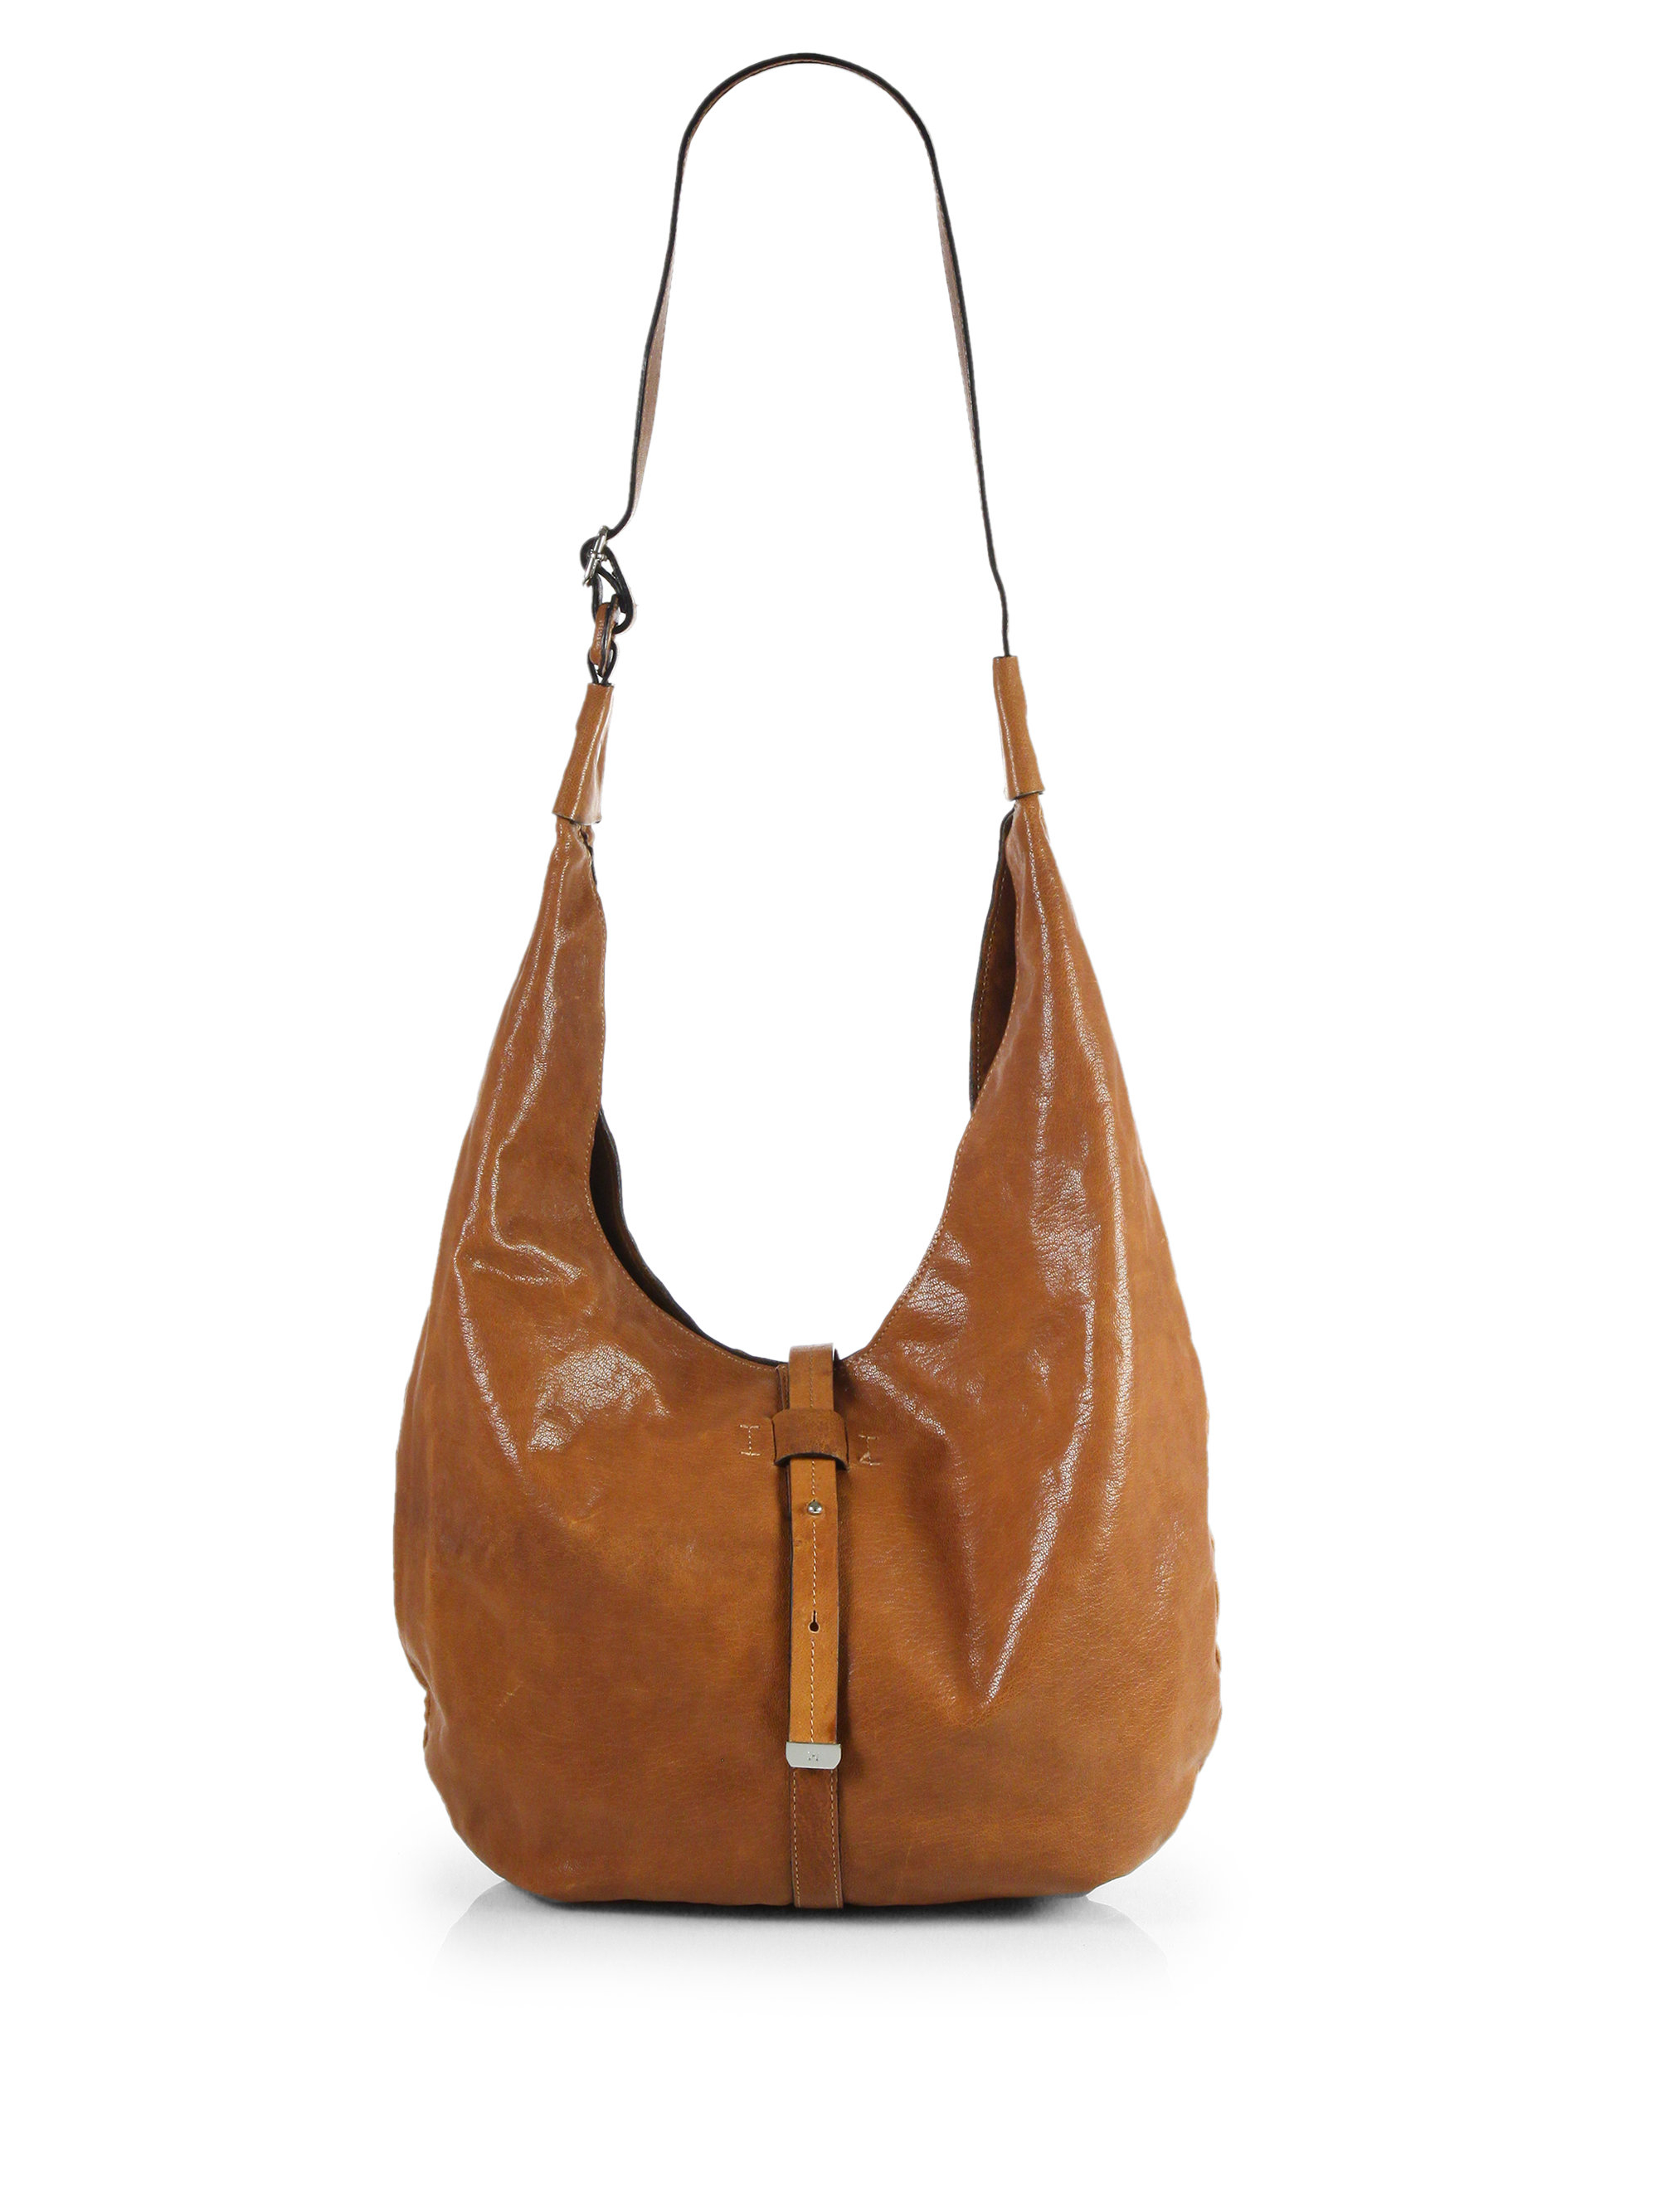 Halston New Leather Hobo Bag in Brown | Lyst